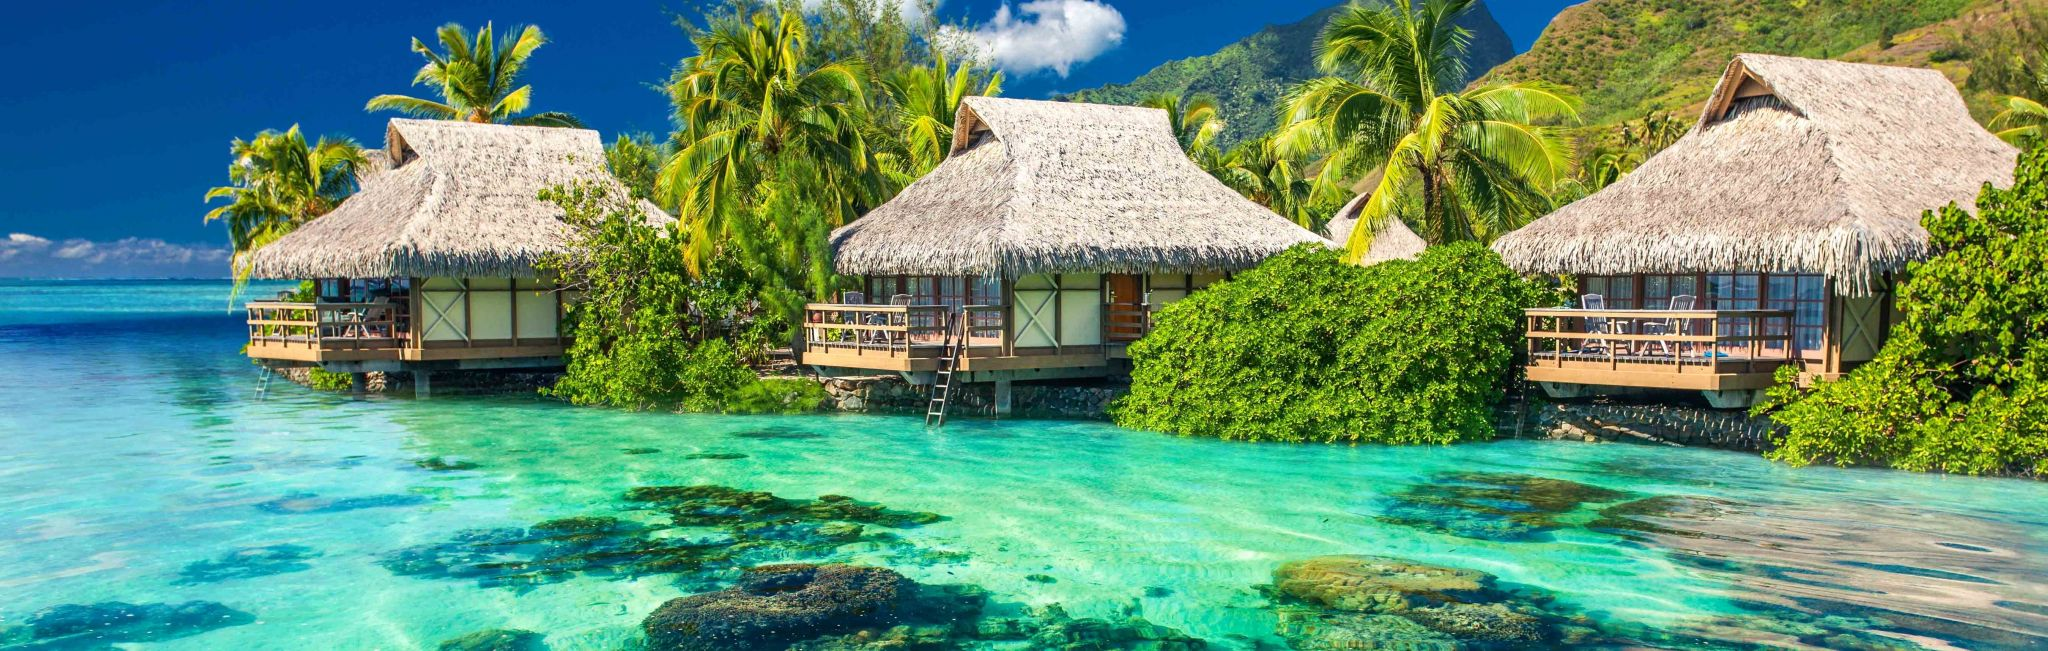 Fiji Vacations 2015 2016 Best Fiji Vacation Packages